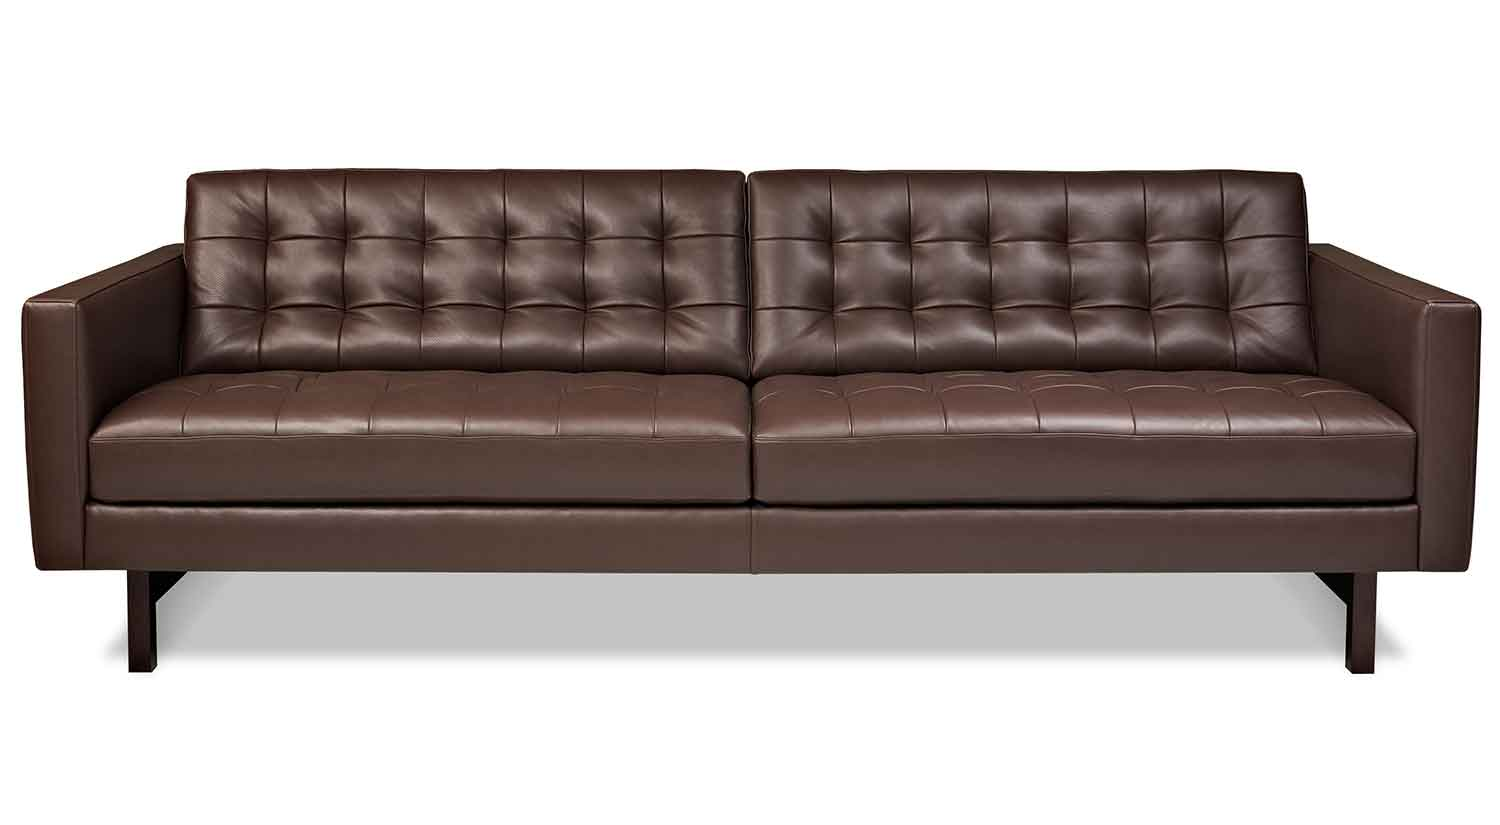 parker sofa and loveseat sleeper new york city circle furniture designer sofas boston